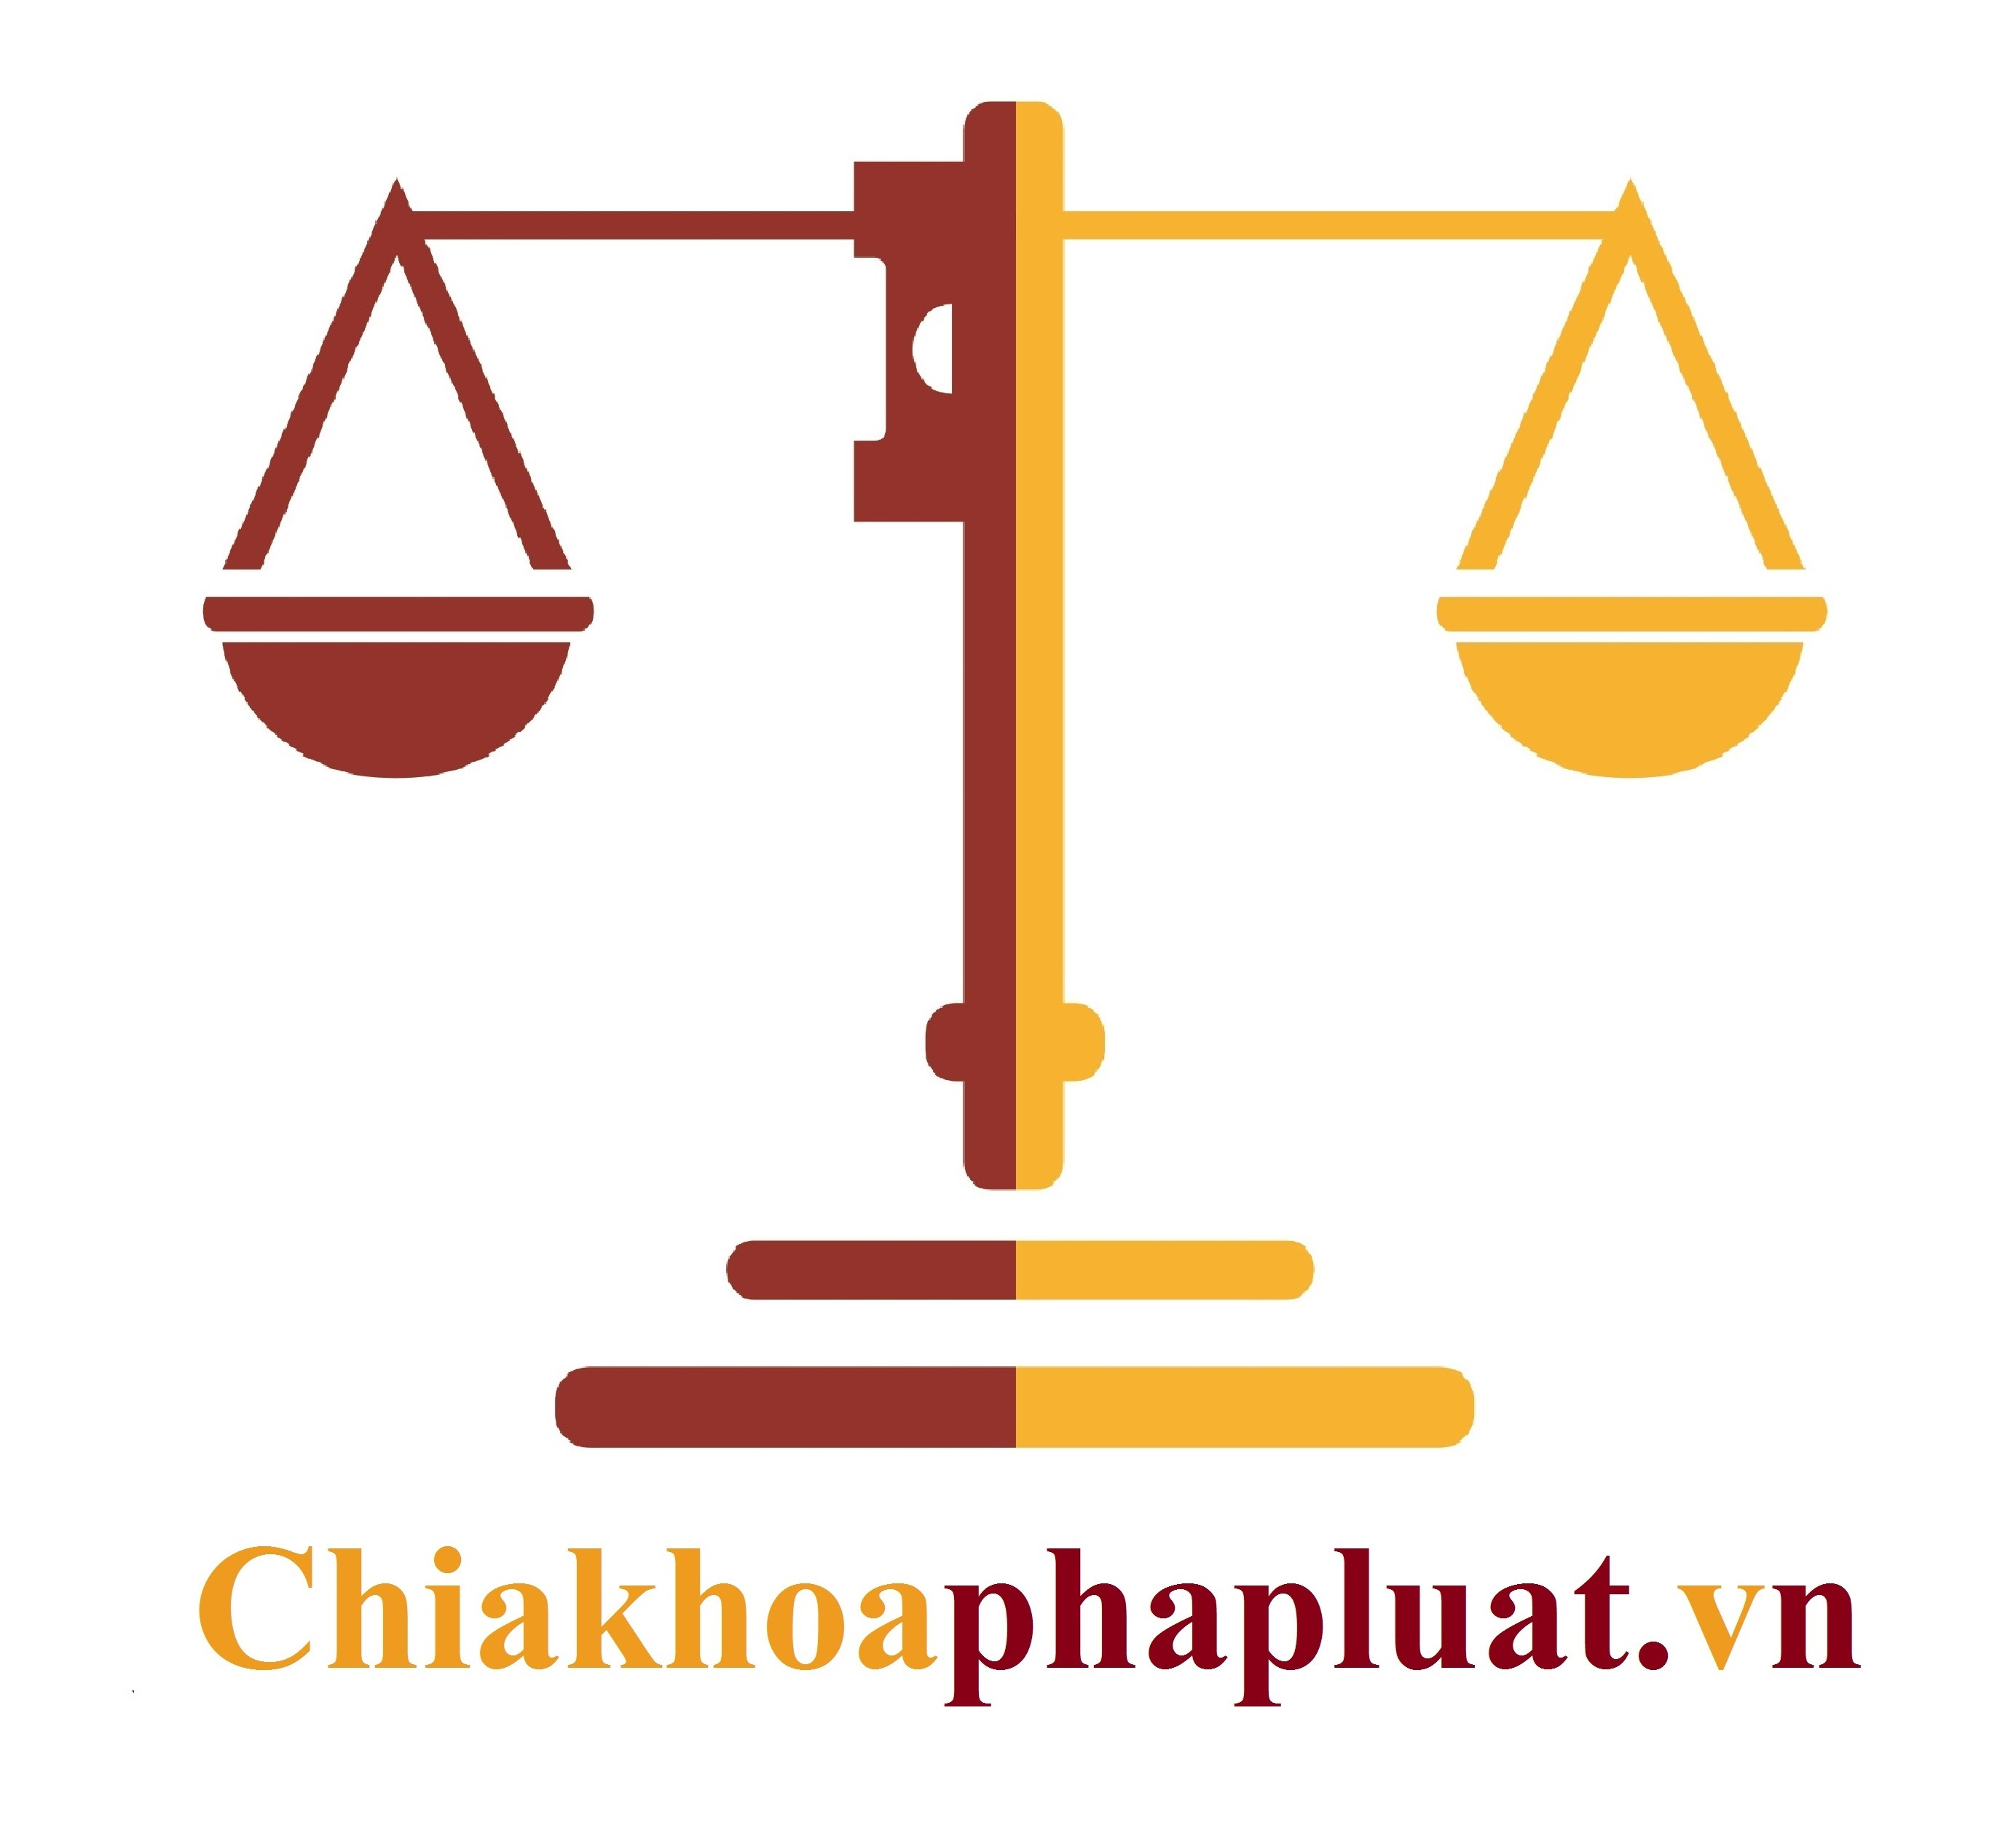 chiakhoaphapluat.vn